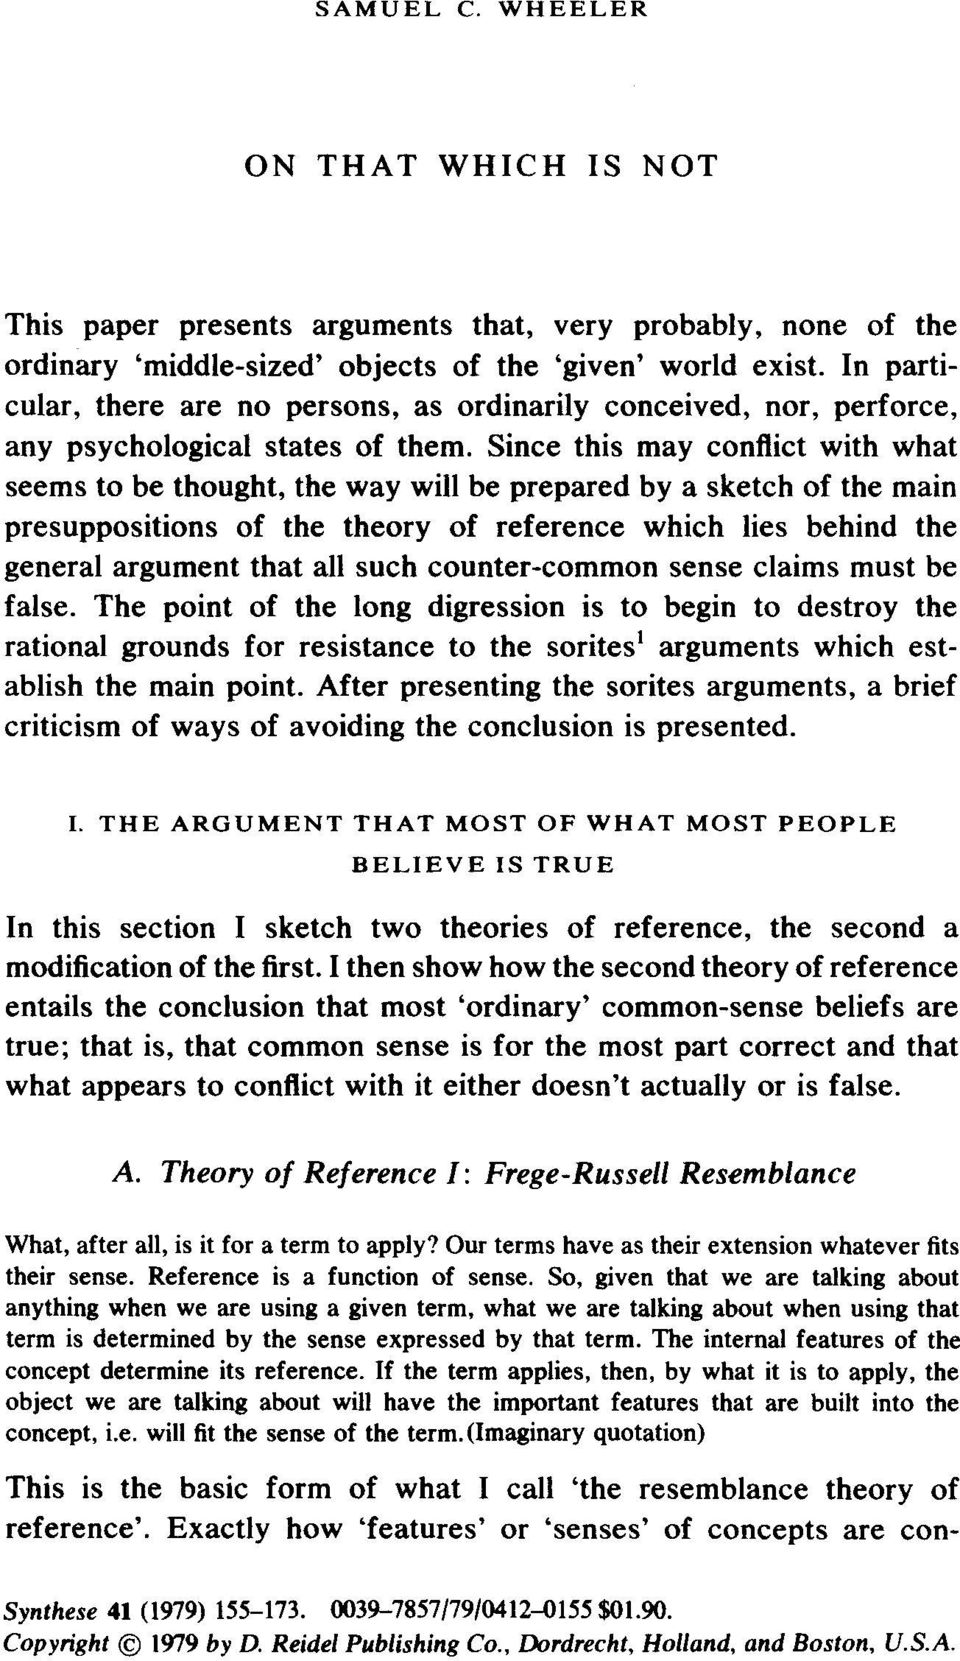 Since this may conflict with what seems to be thought, the way will be prepared by a sketch of the main presuppositions of the theory of reference which lies behind the general argument that all such